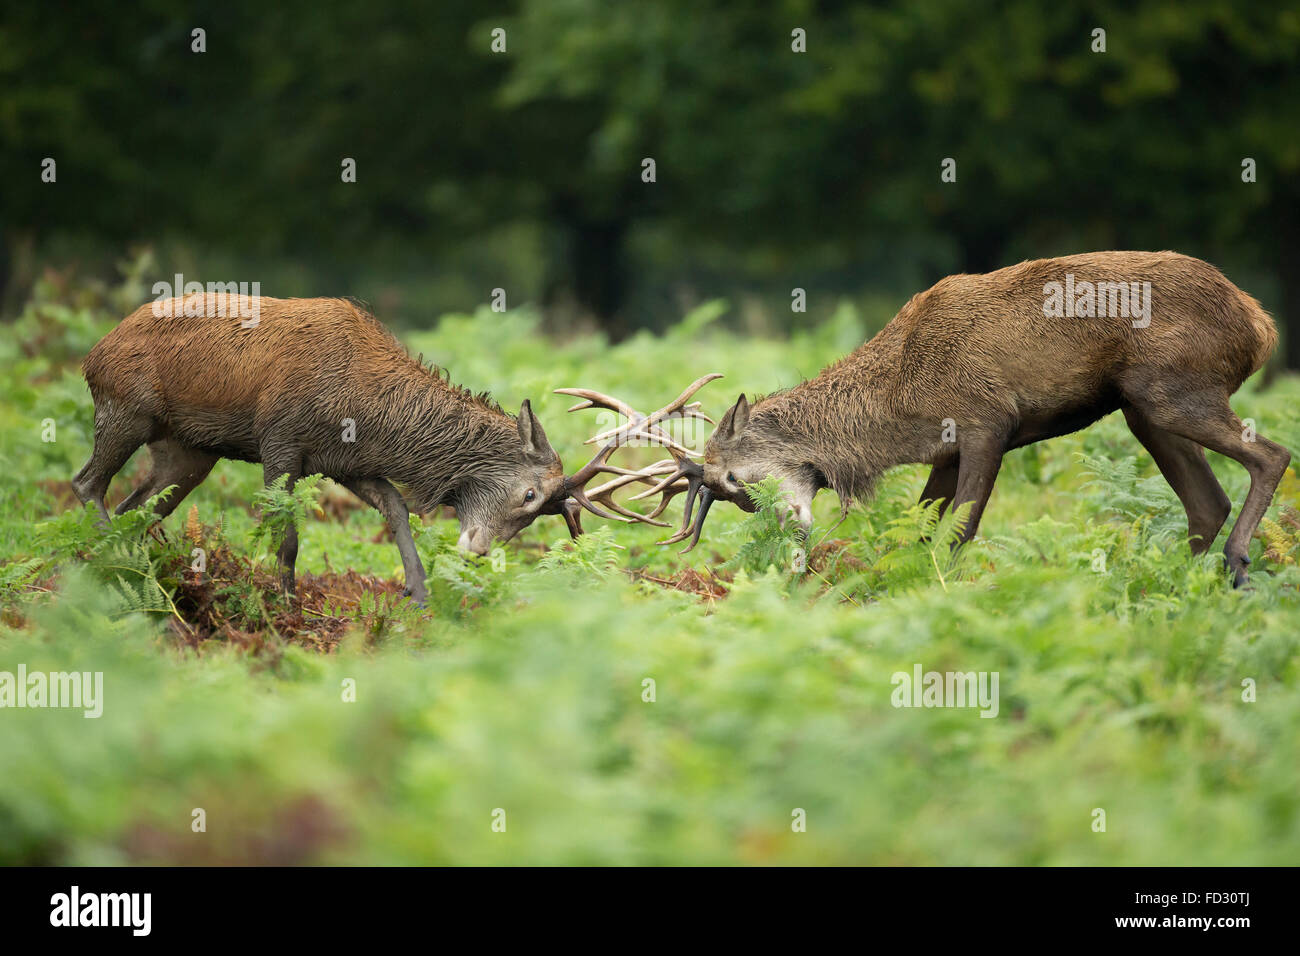 Red deer (Cervus elaphus) stags battle during rutting season - Stock Image